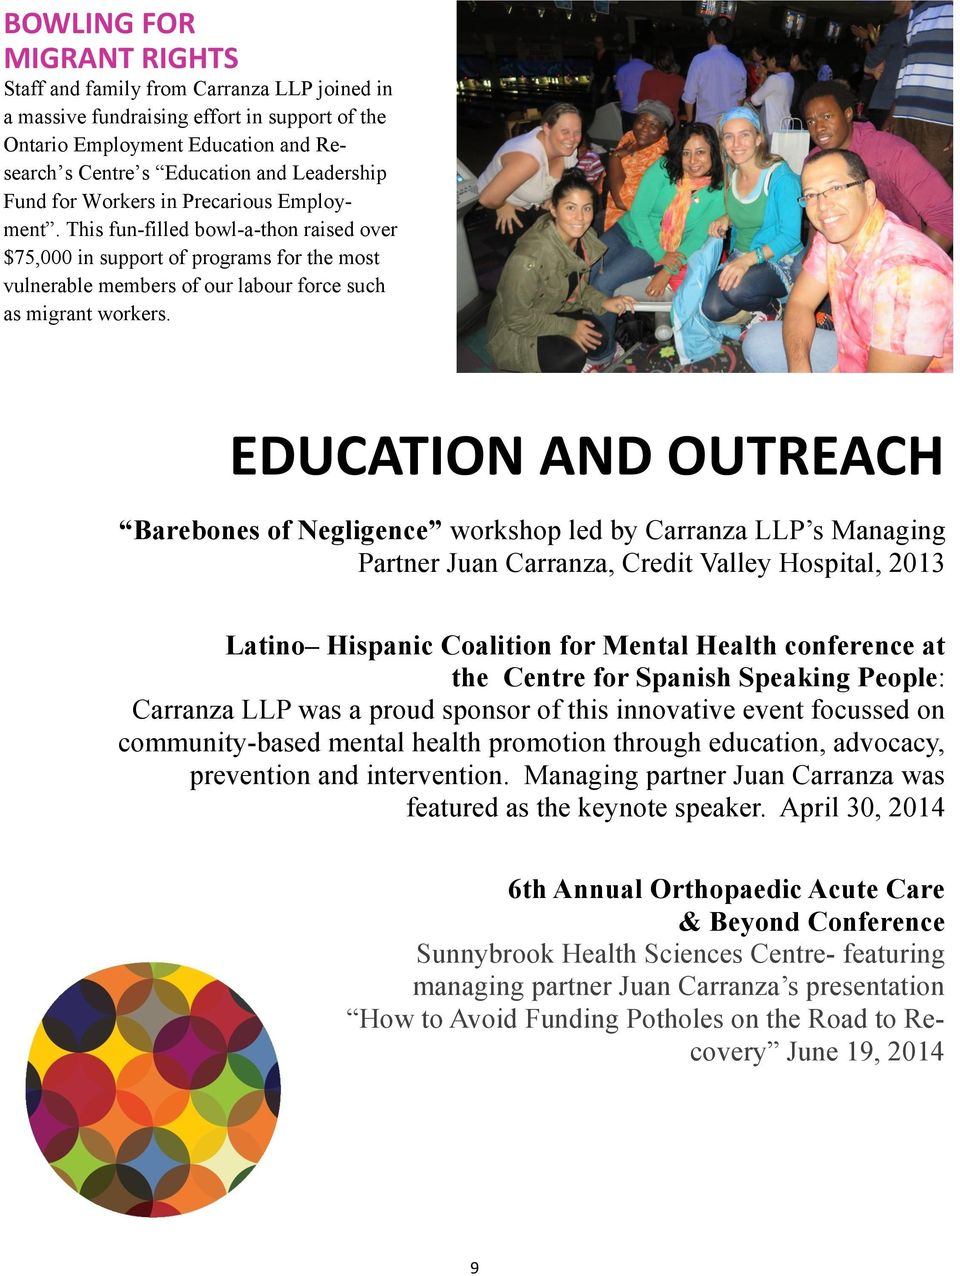 EDUCATION AND OUTREACH Barebones of Negligence workshop led by Carranza LLP s Managing Partner Juan Carranza, Credit Valley Hospital, 2013 Latino Hispanic Coalition for Mental Health conference at